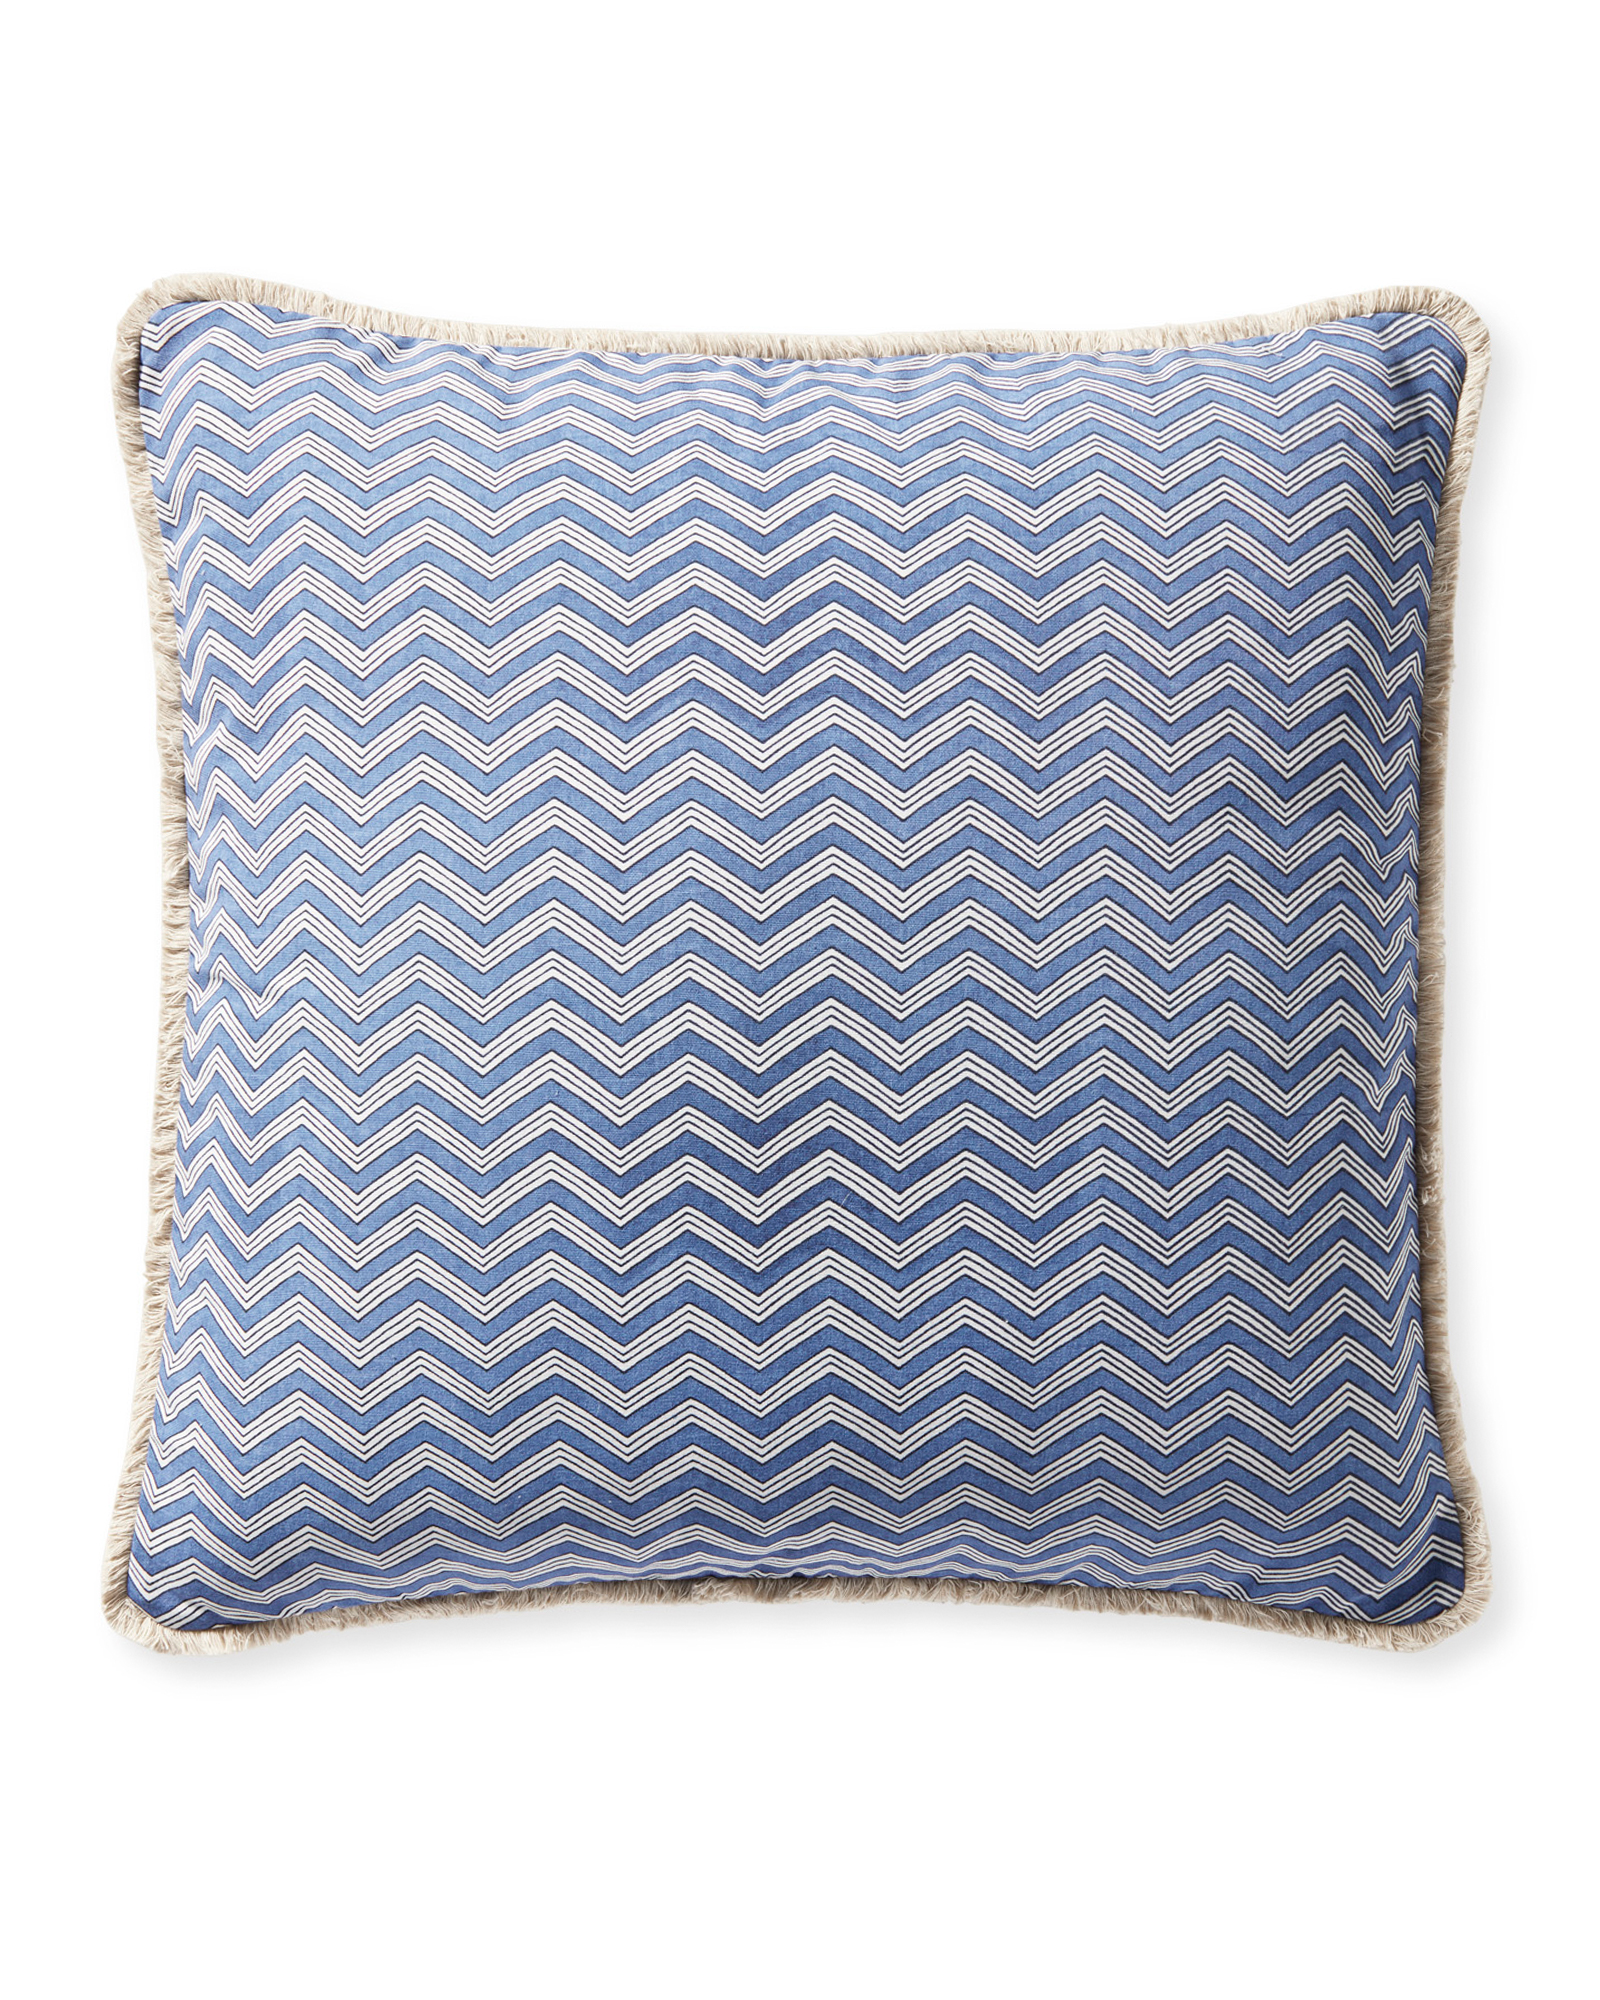 Calais Pillow Cover, French Blue/Navy